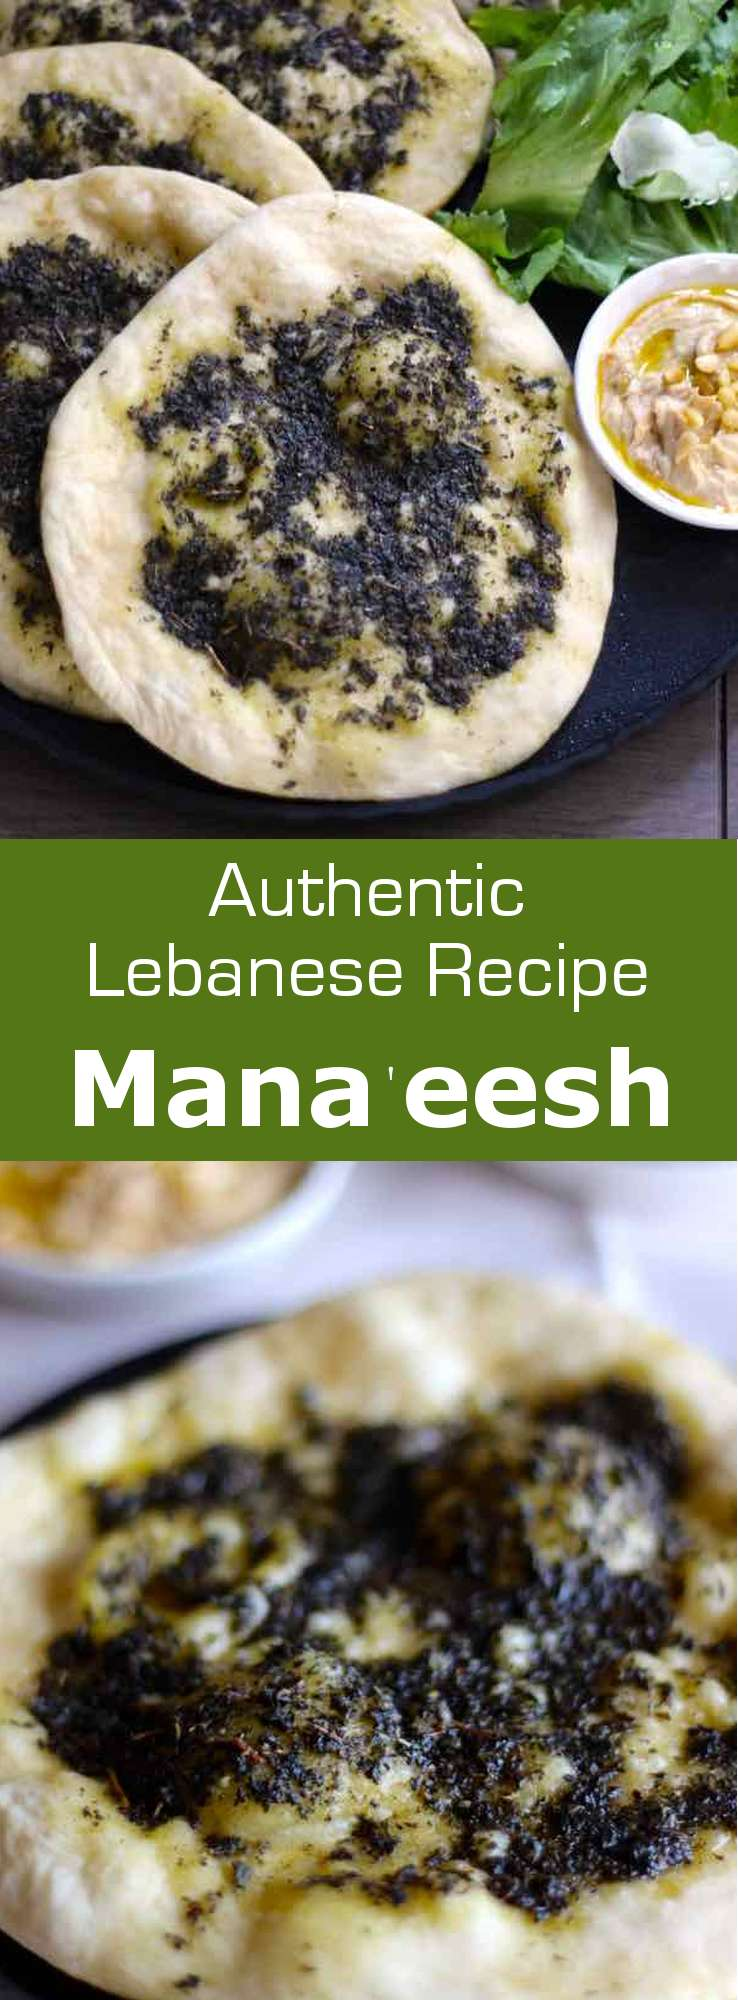 Mana'eesh are traditional Lebanese flatbreads cooked in a saj or pan and deliciously flavored with zaatar or other ingredients. #Lebanon #196flavors